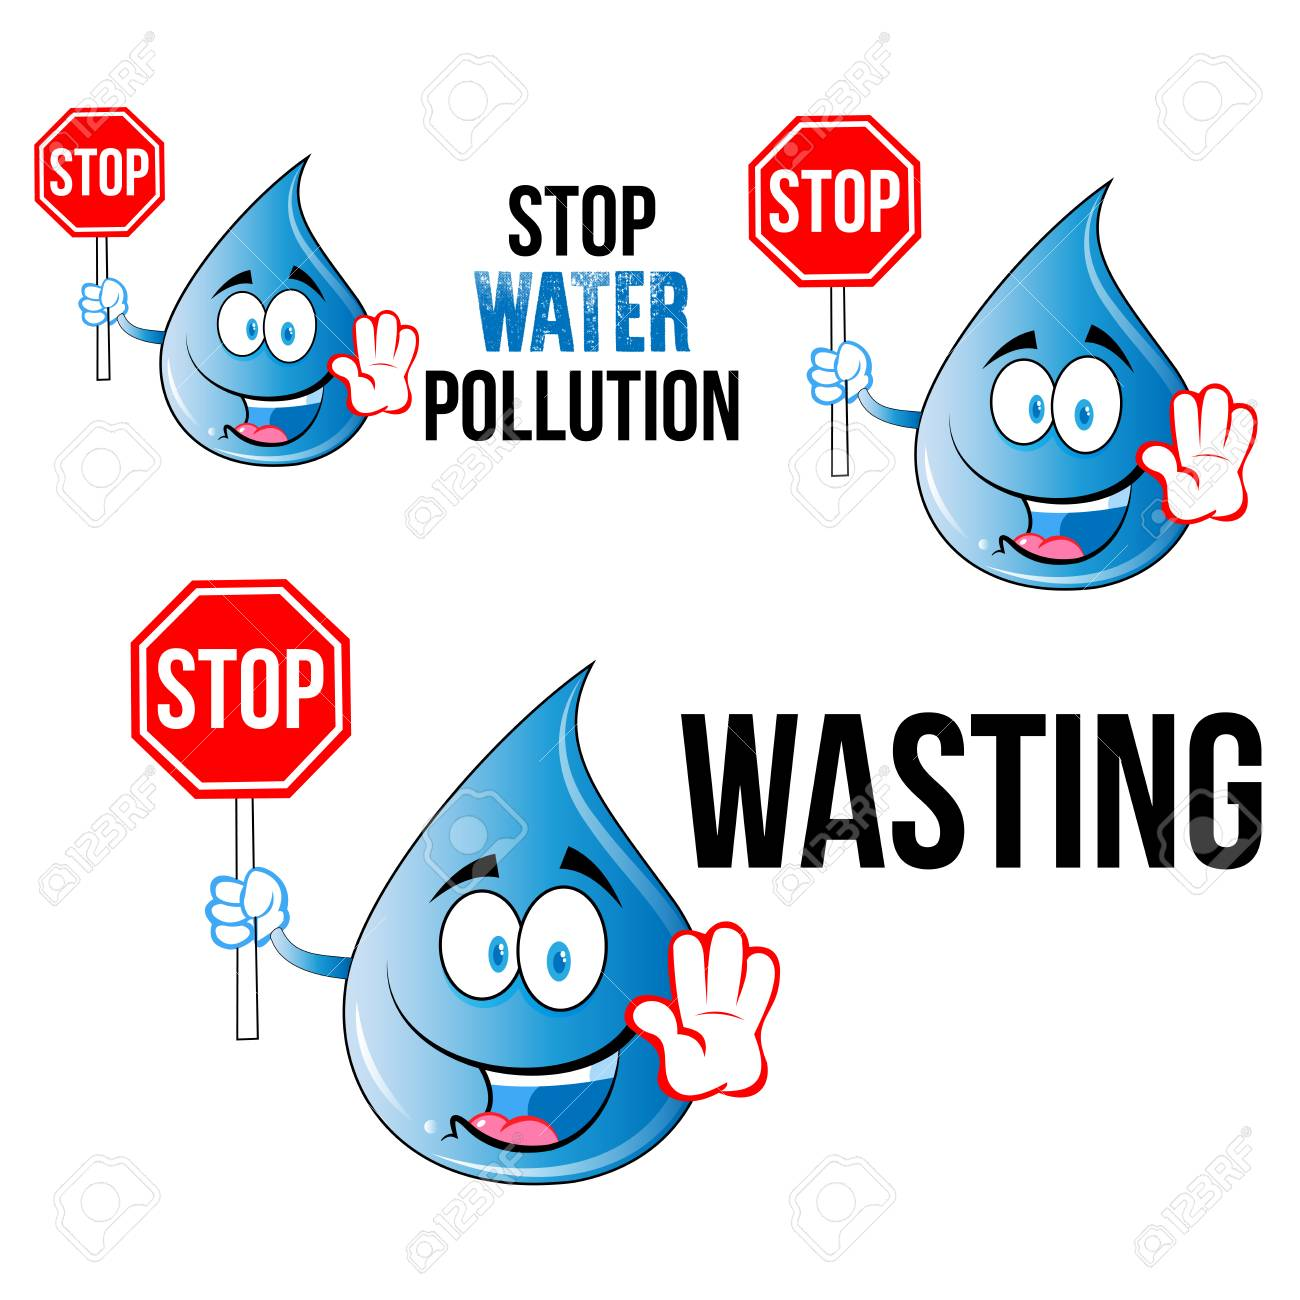 save water slogans with cartoon smily face water drop for t shirt